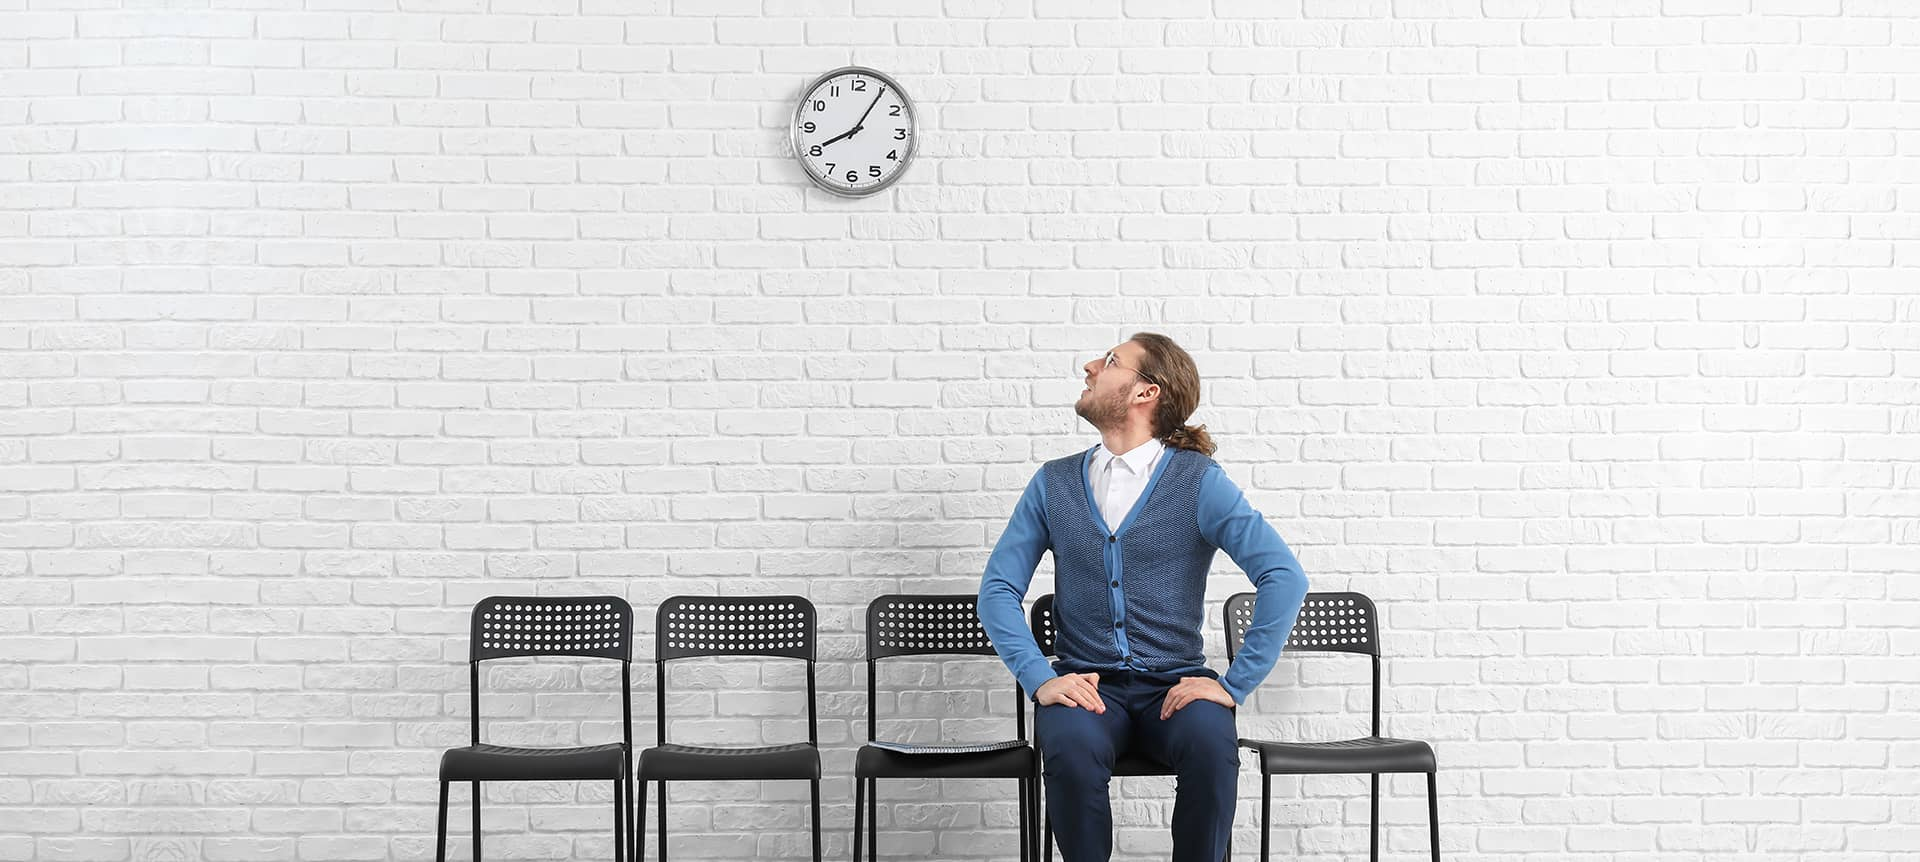 A candidate sitting on a chair and staring at the clock, waiting for his interview to start.